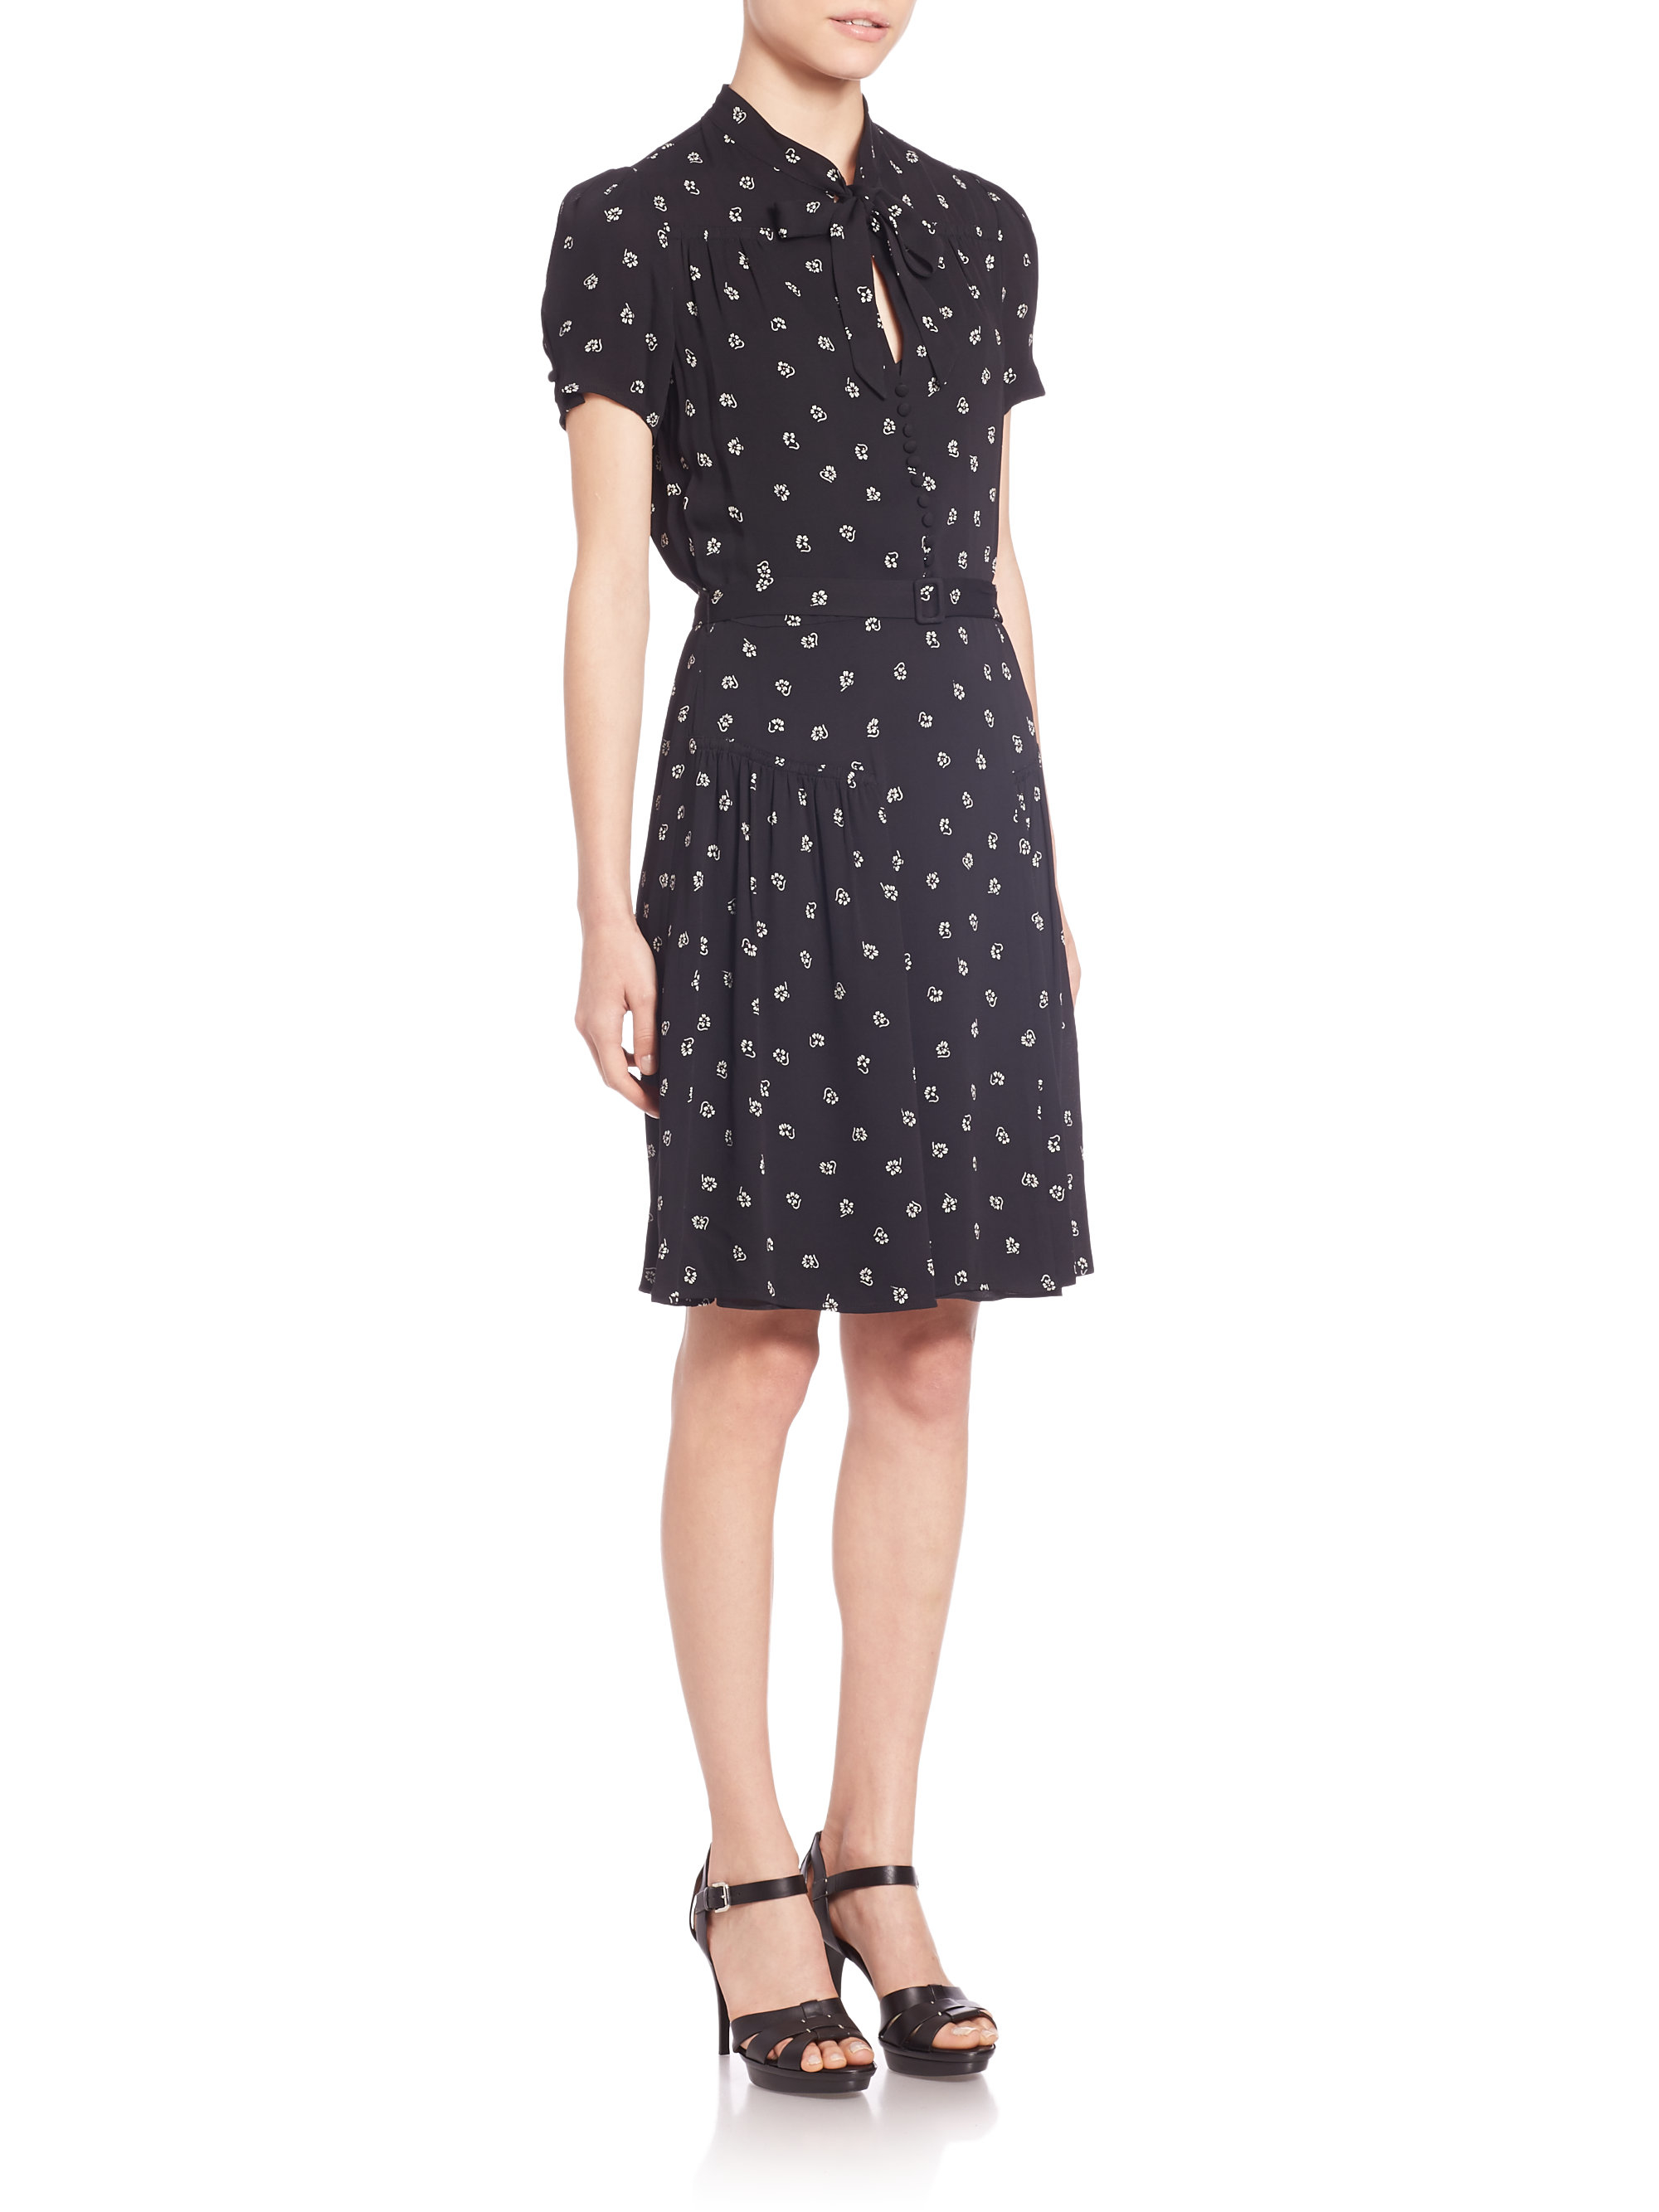 Lyst - Polo Ralph Lauren Printed Tie-front Dress in Black 95a412fbdd